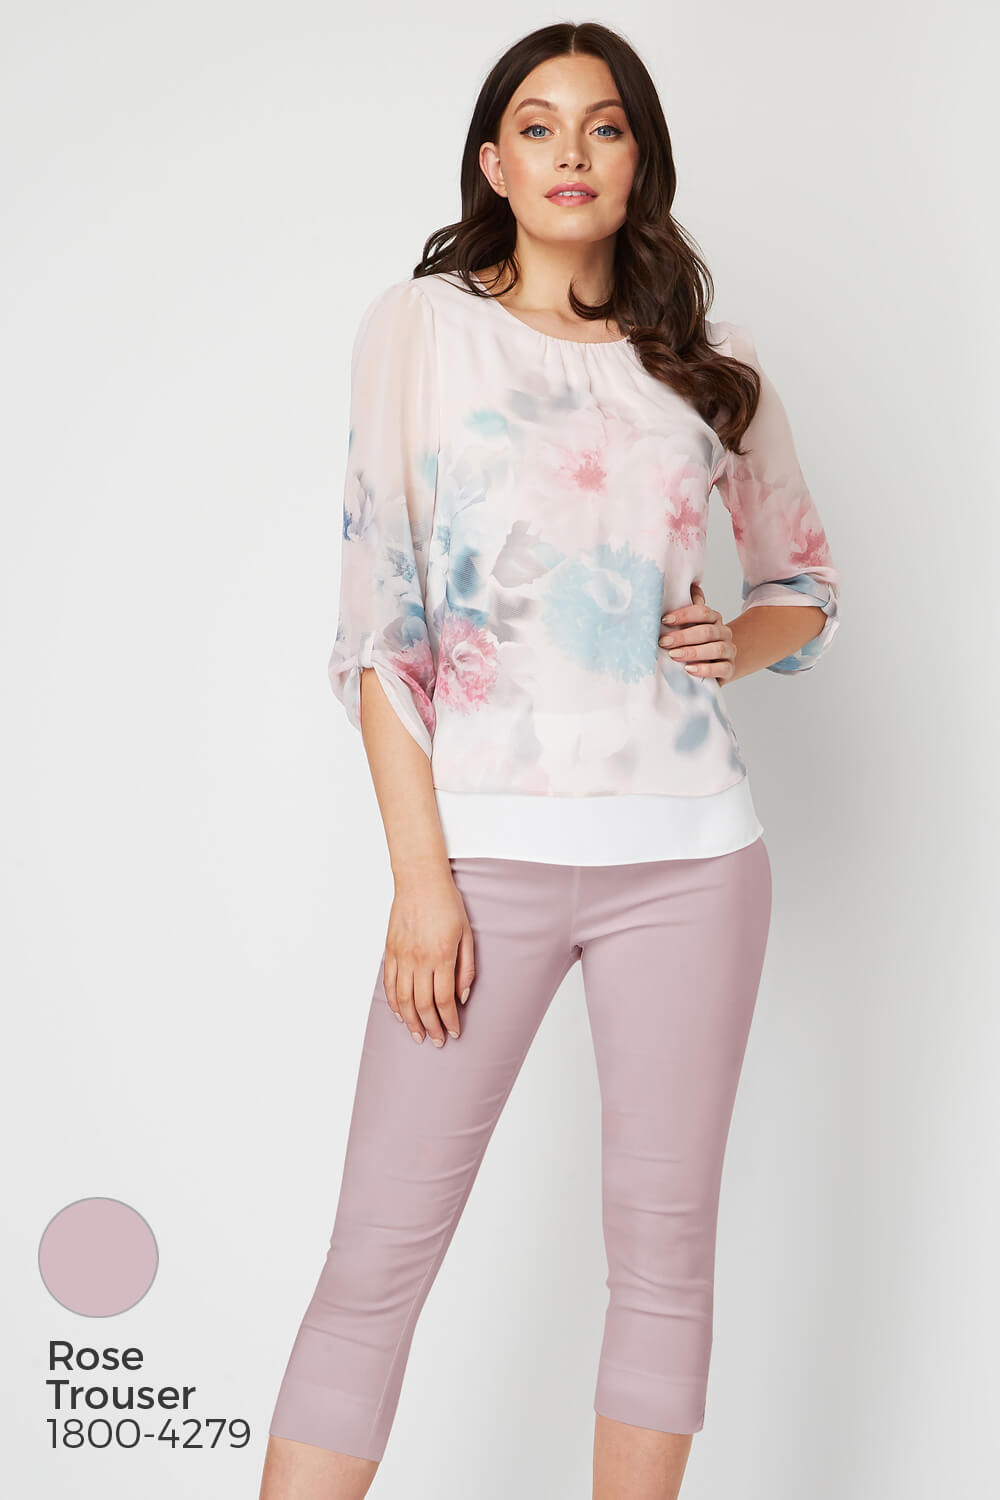 Roman-Originals-Womens-3-4-Length-Sleeve-Floral-Overlay-Top thumbnail 20